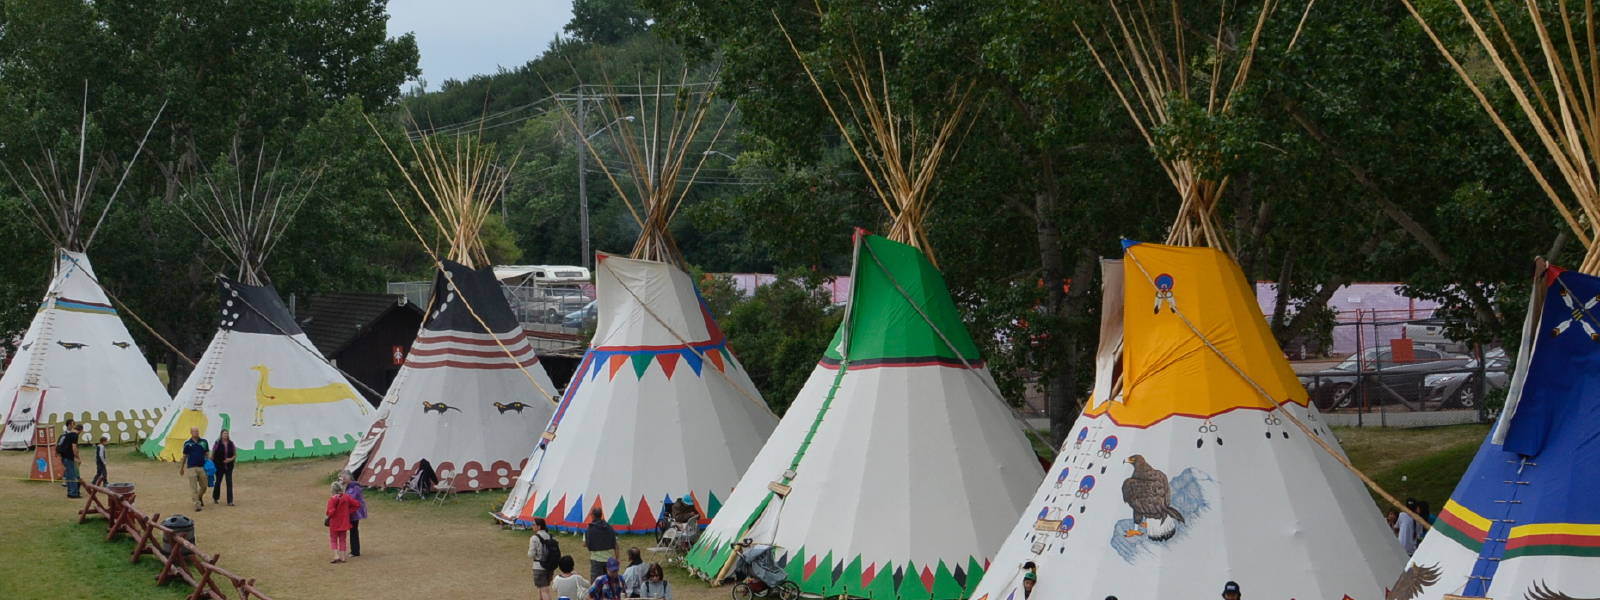 Calgary Stampede Indian Village July 6 15 2018